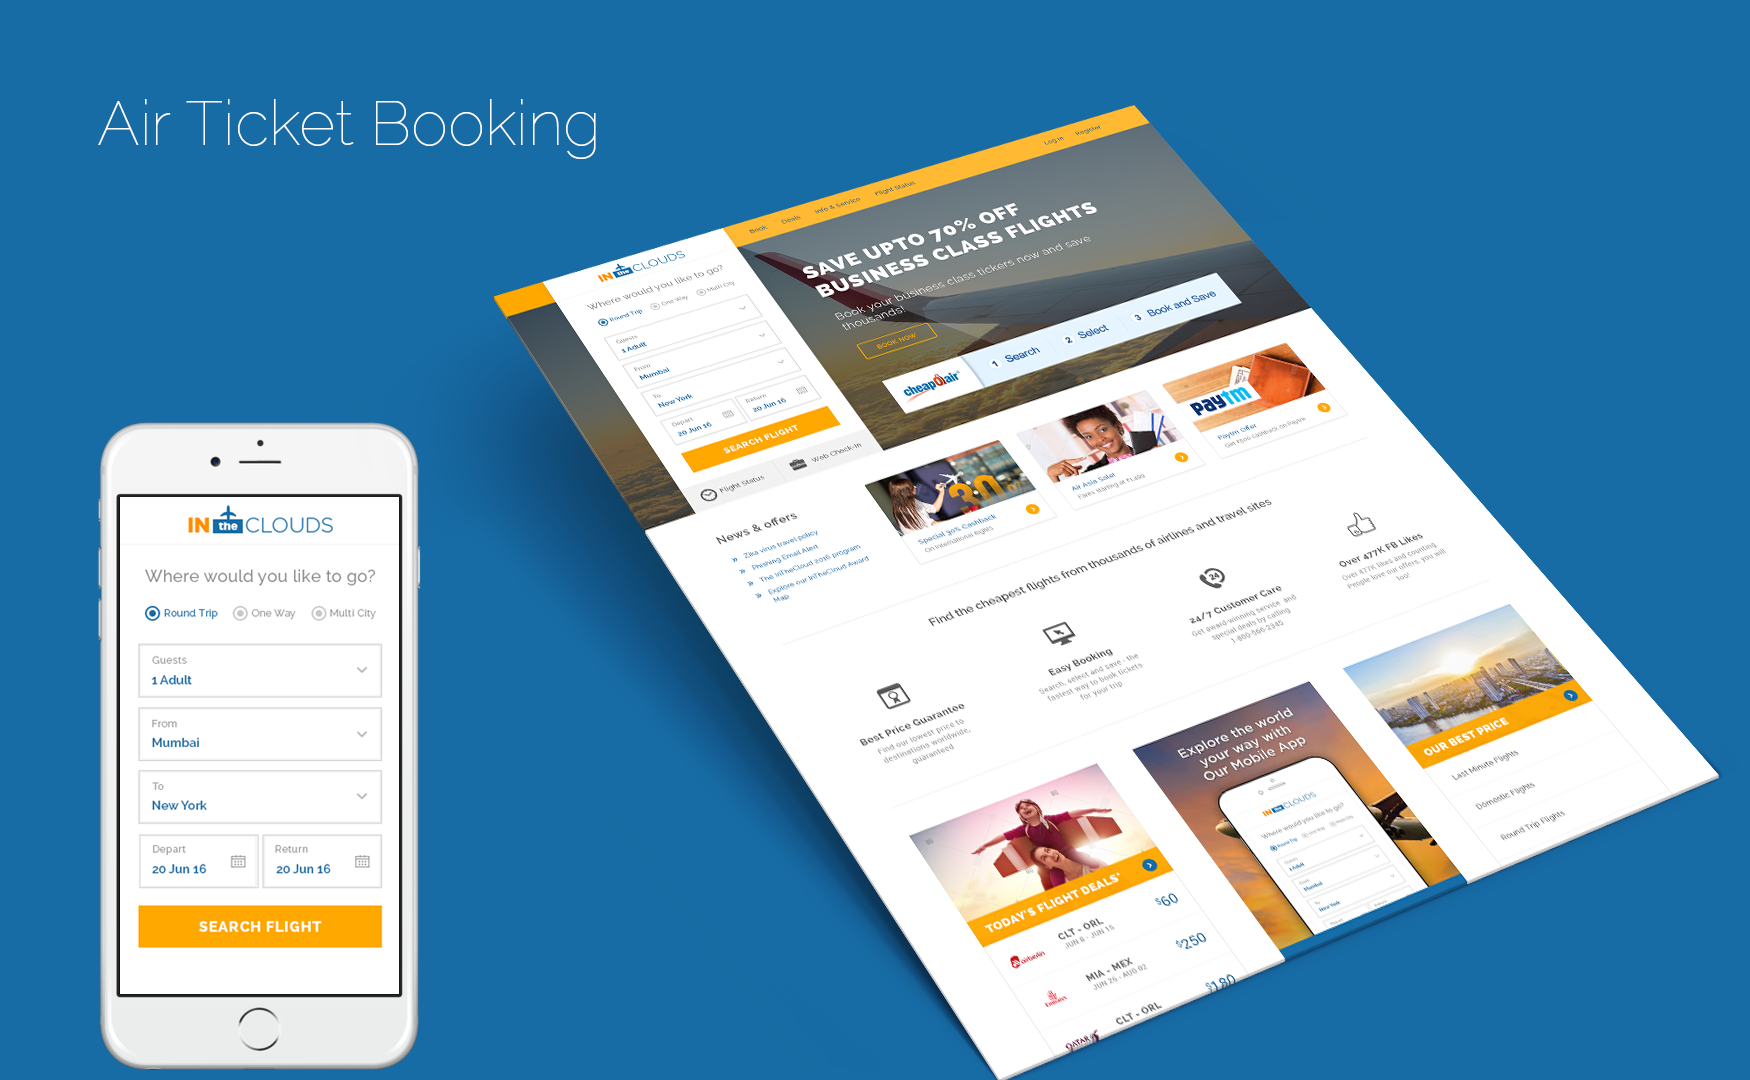 AirTicket Booking